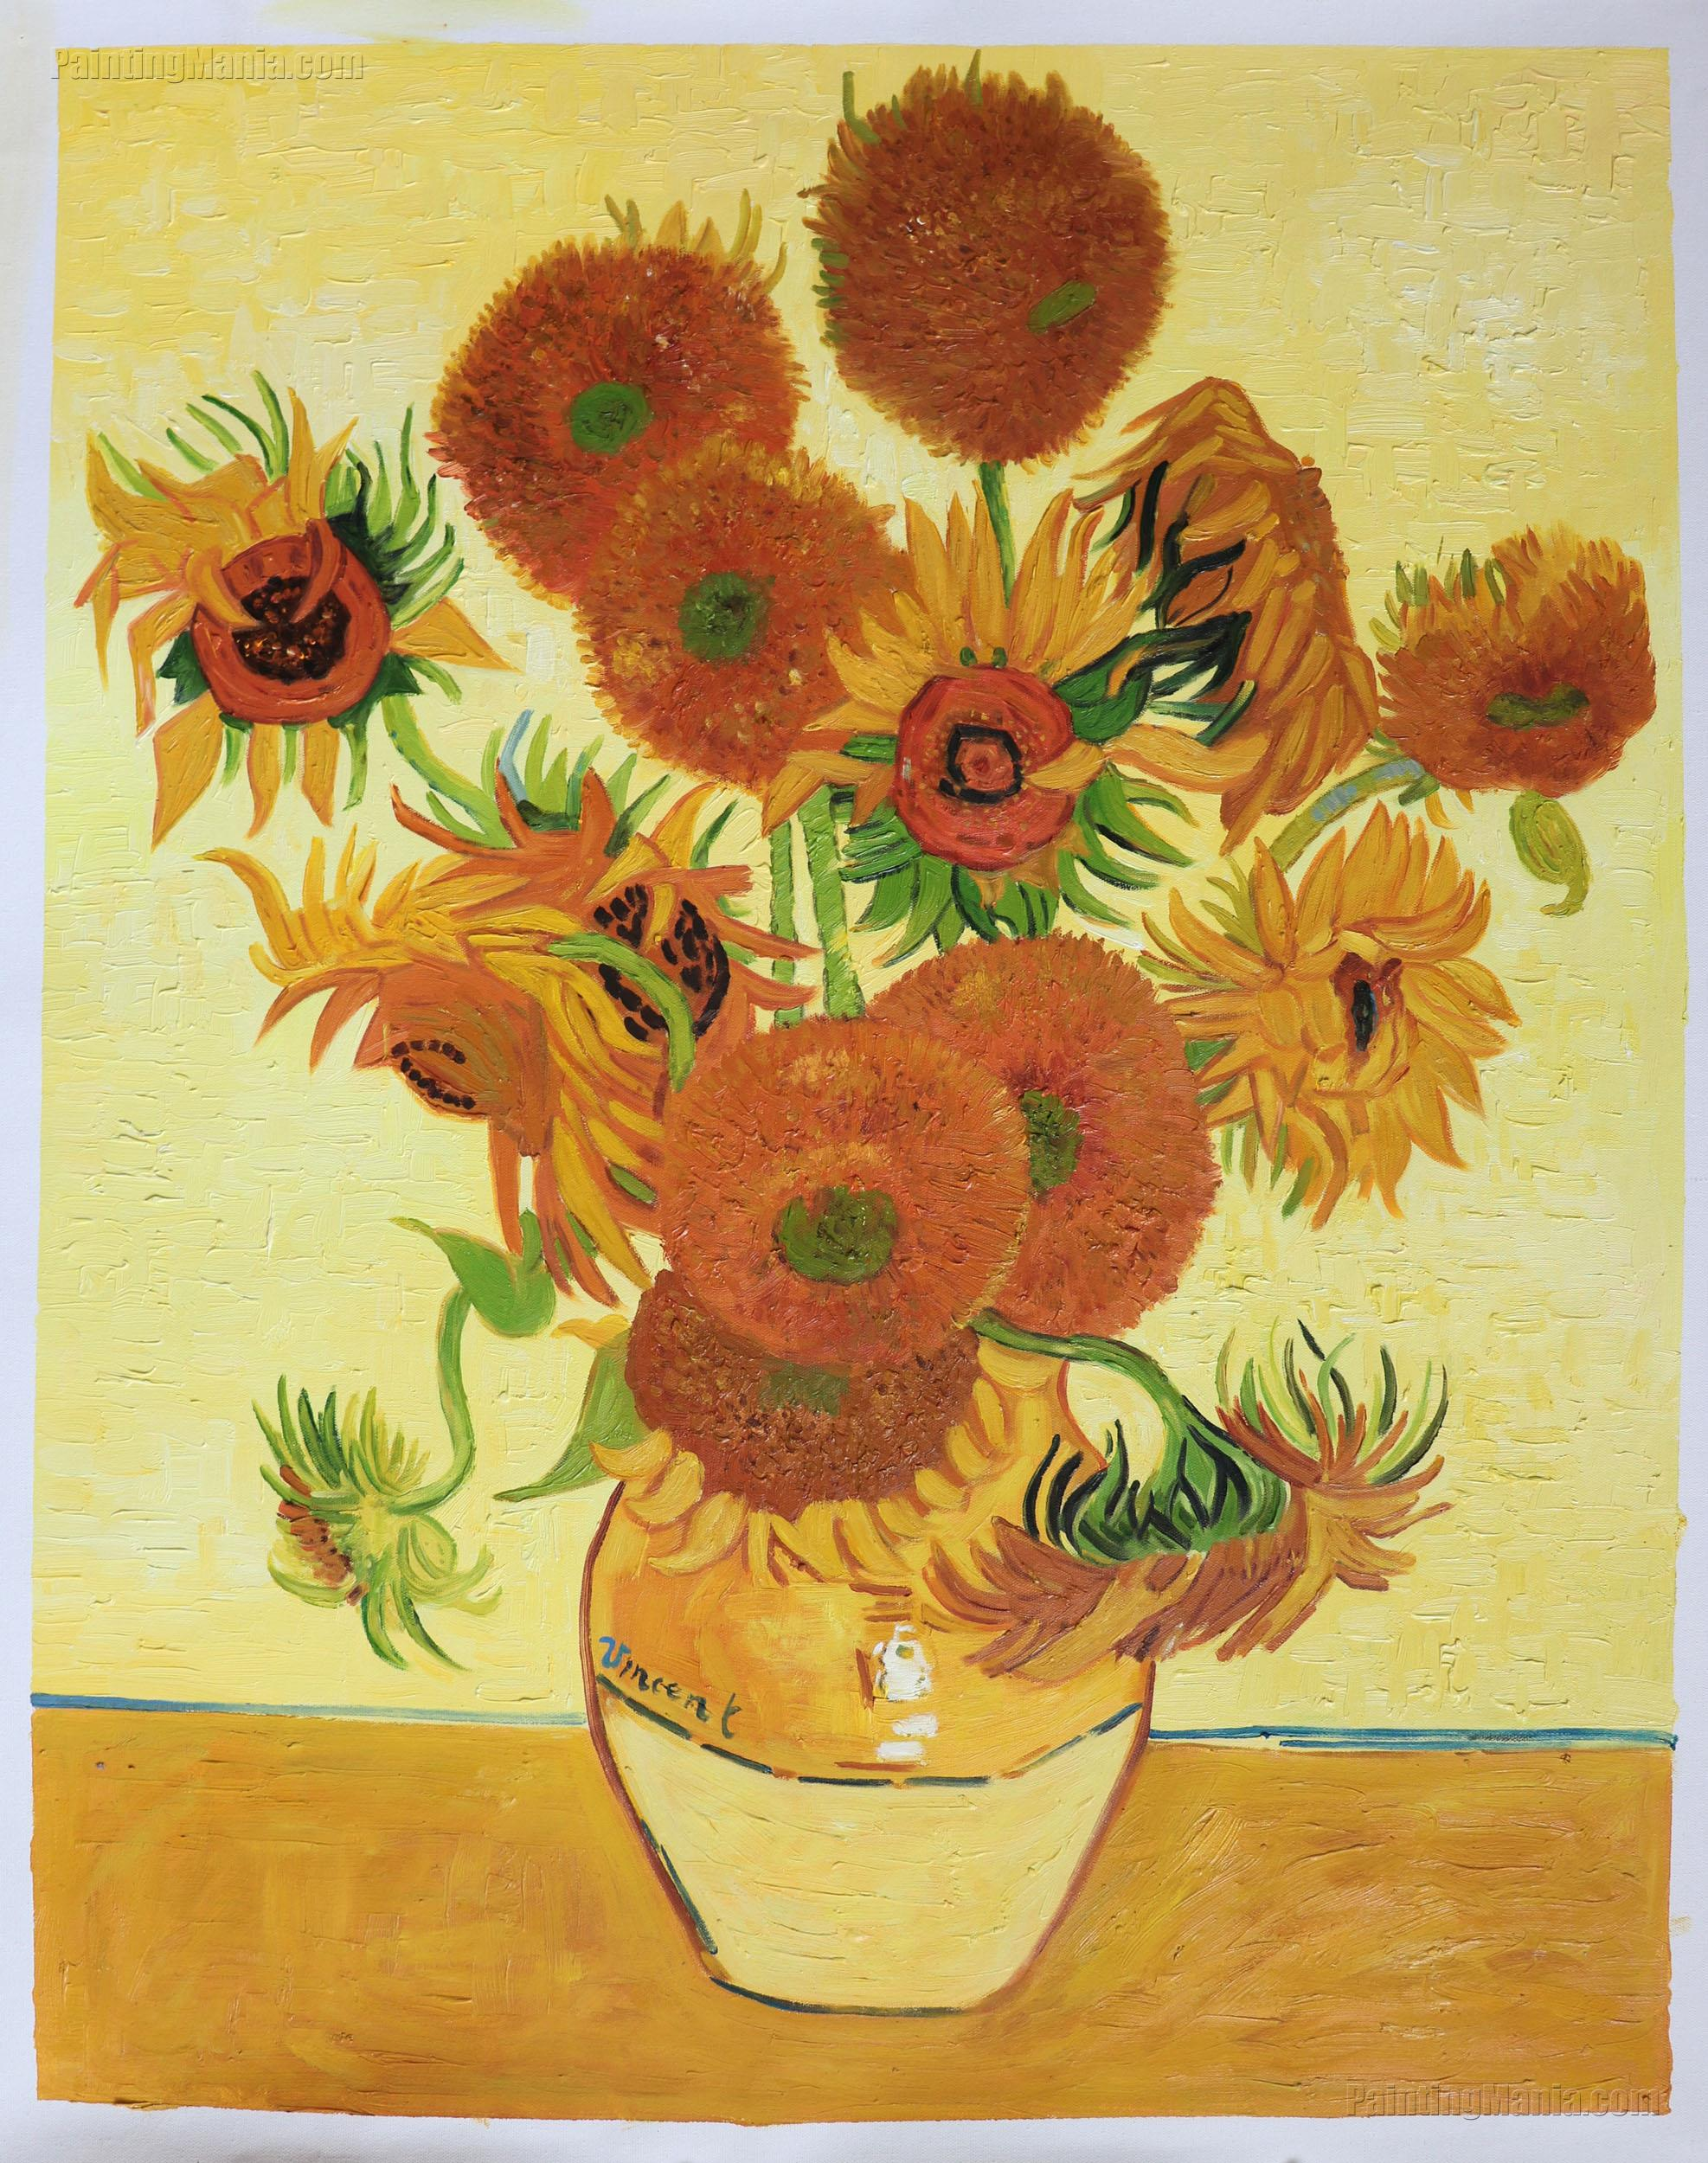 Vincent Van Gogh Paintings Sunflowers Sunflowers Vincent Van Gogh Paintings